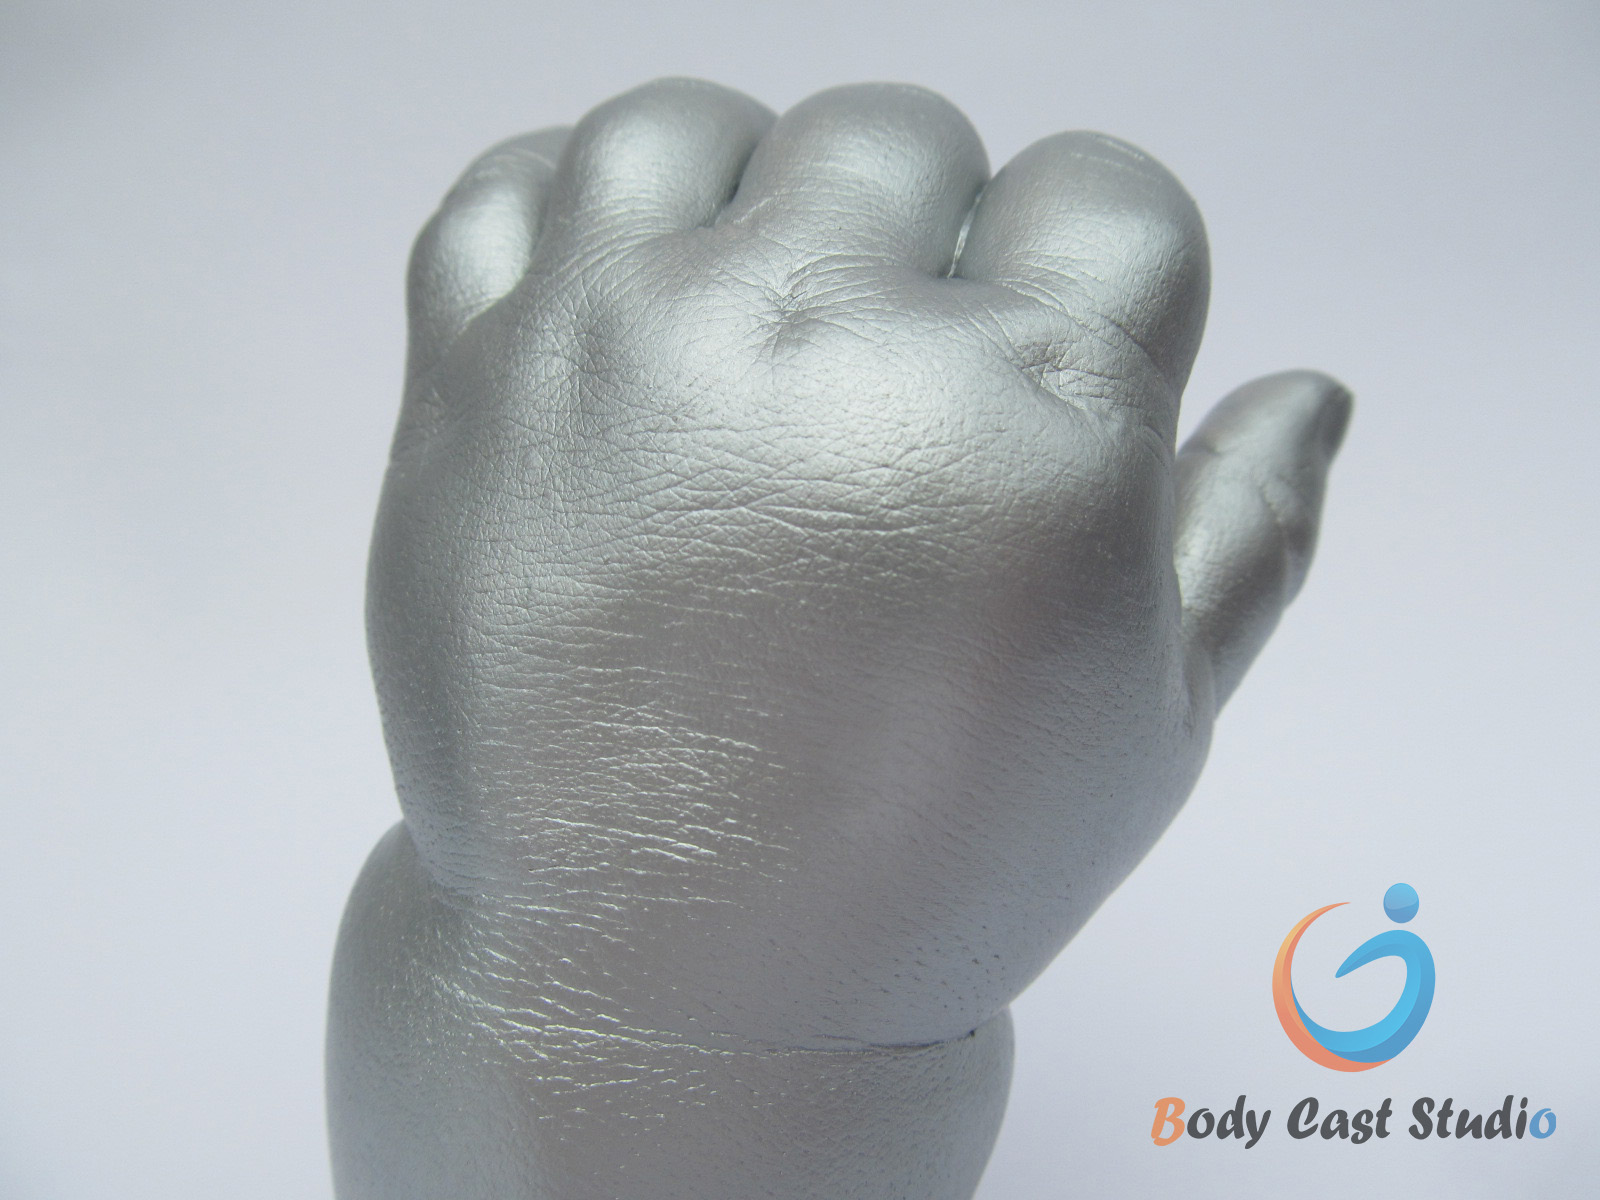 Baby 3d casting kit mini coloured foot handprint 5 6 we help you to do lovely 3d lifecast by yourself at home all what you need to do this successfully included in our kit solutioingenieria Choice Image